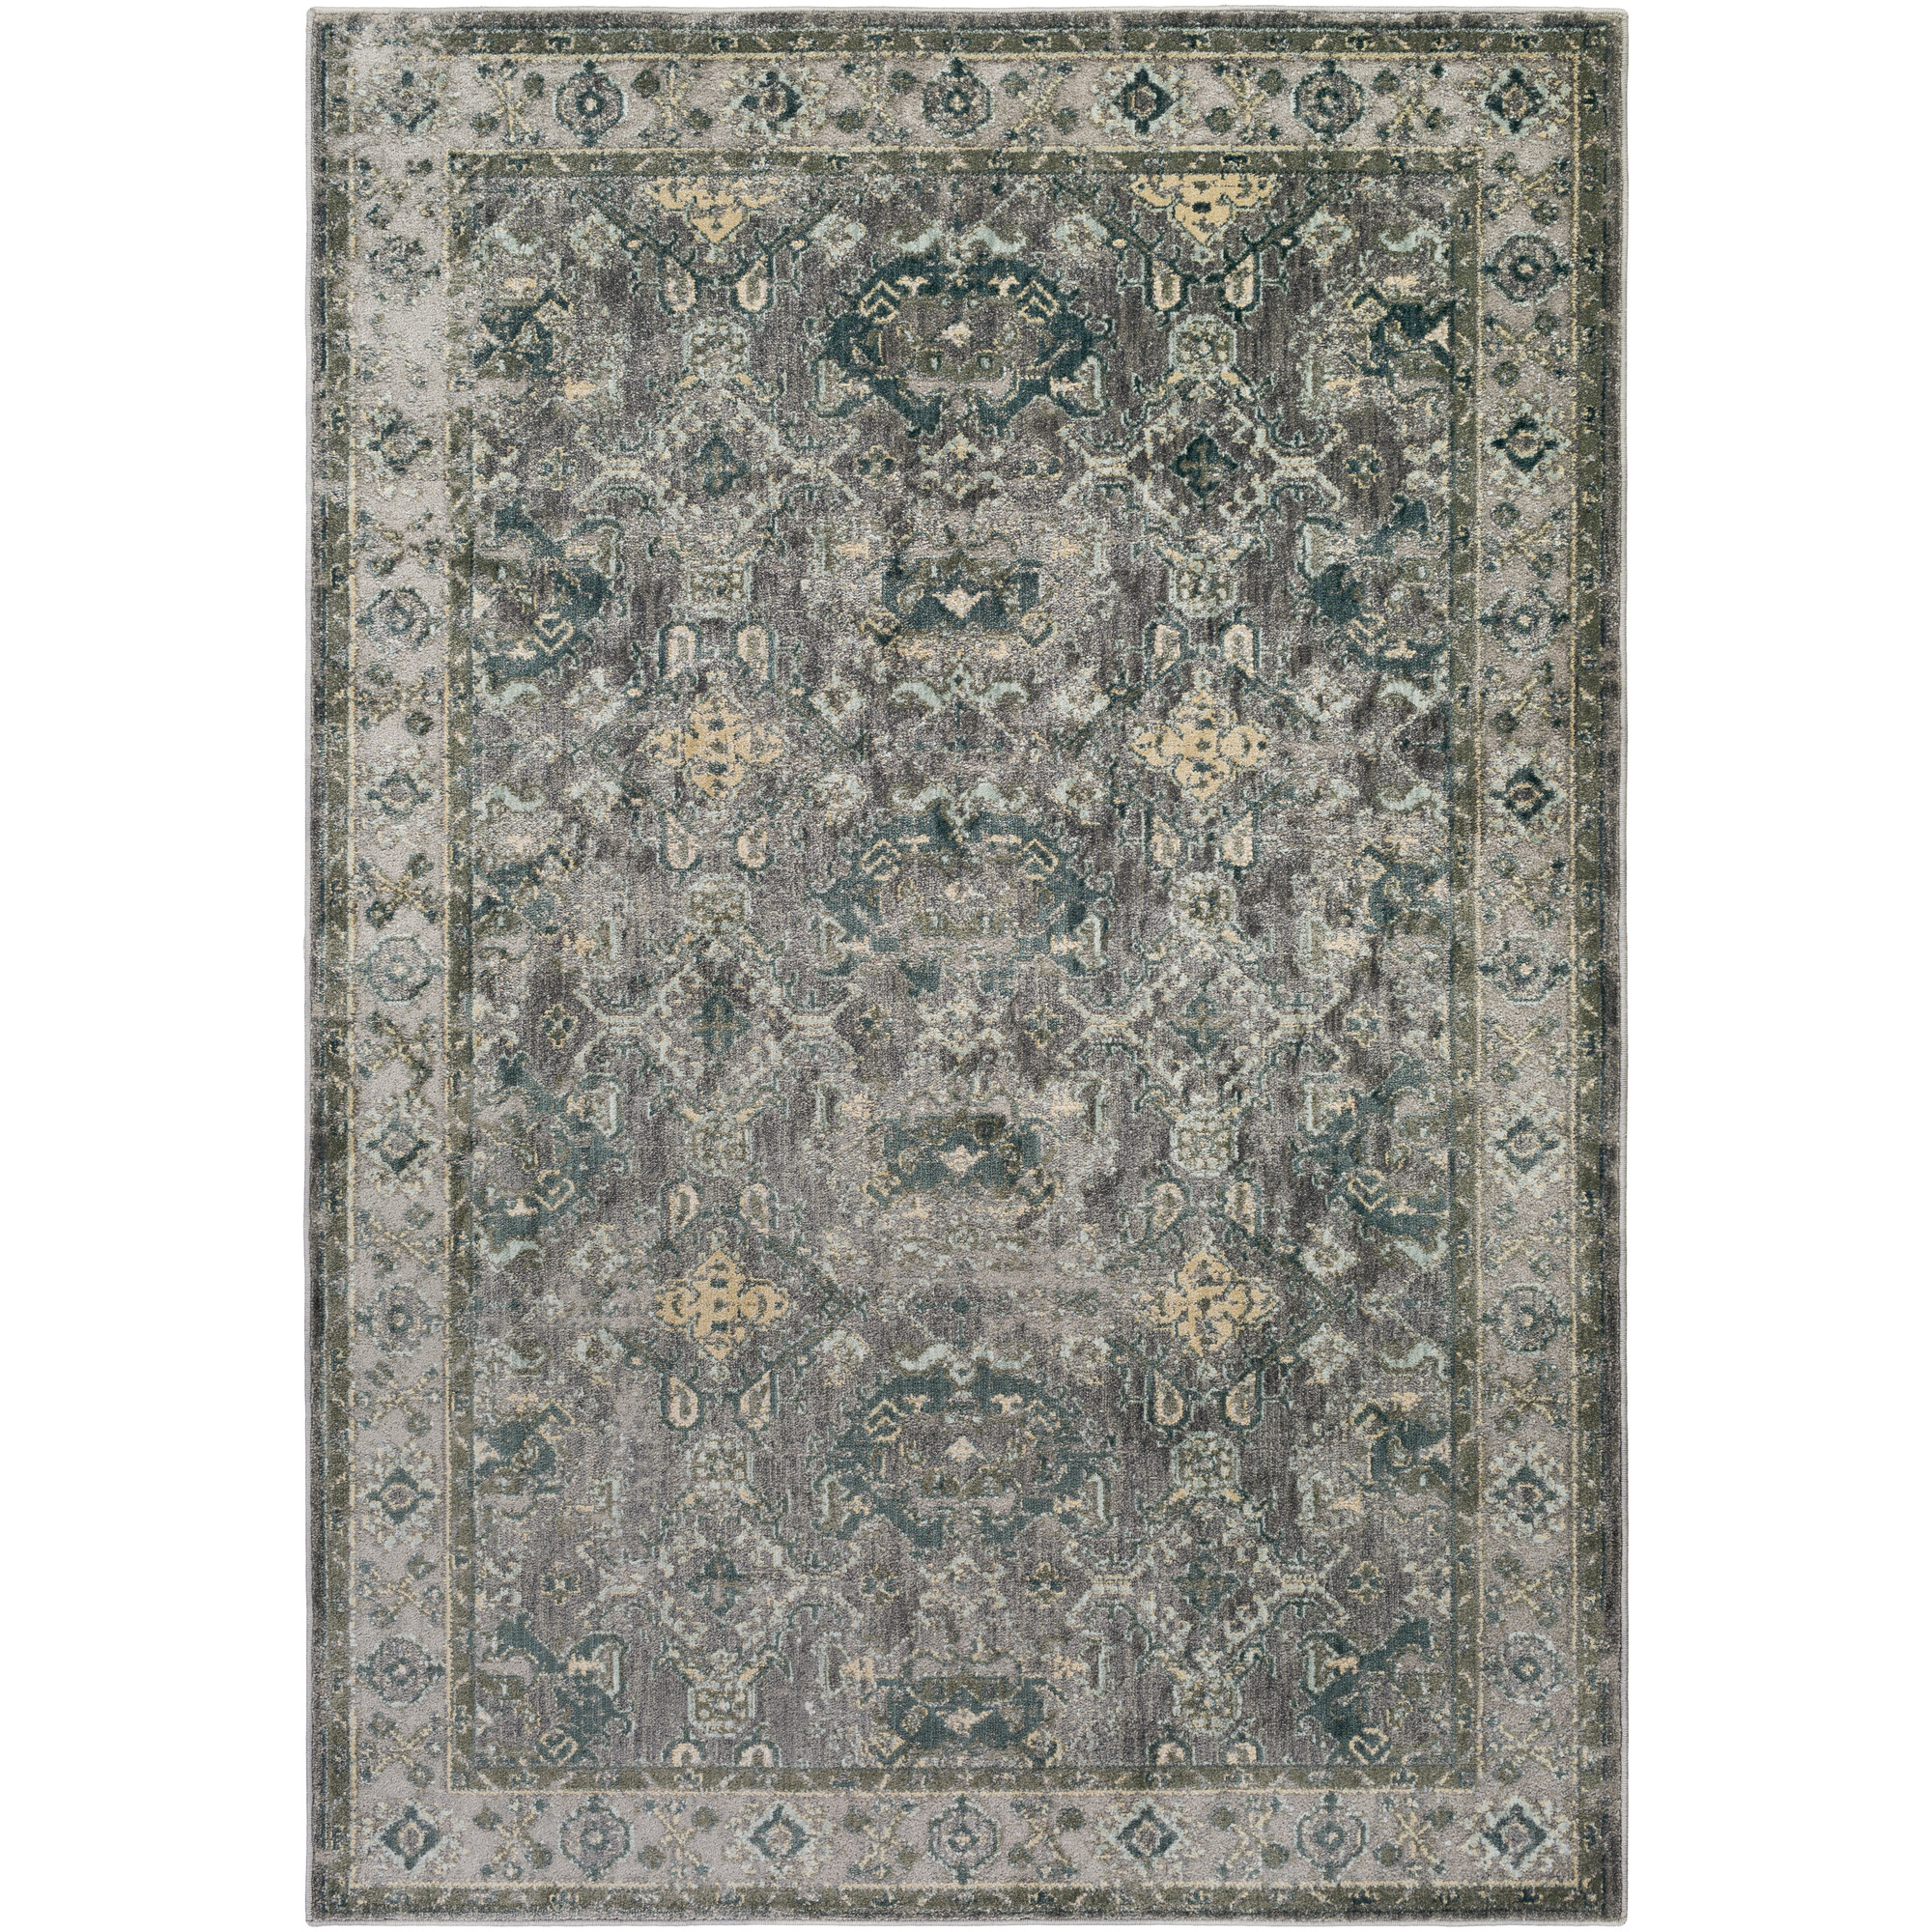 "Art of Knot Suri 1'10"" x 2'11"" Rectangular Area Rug"